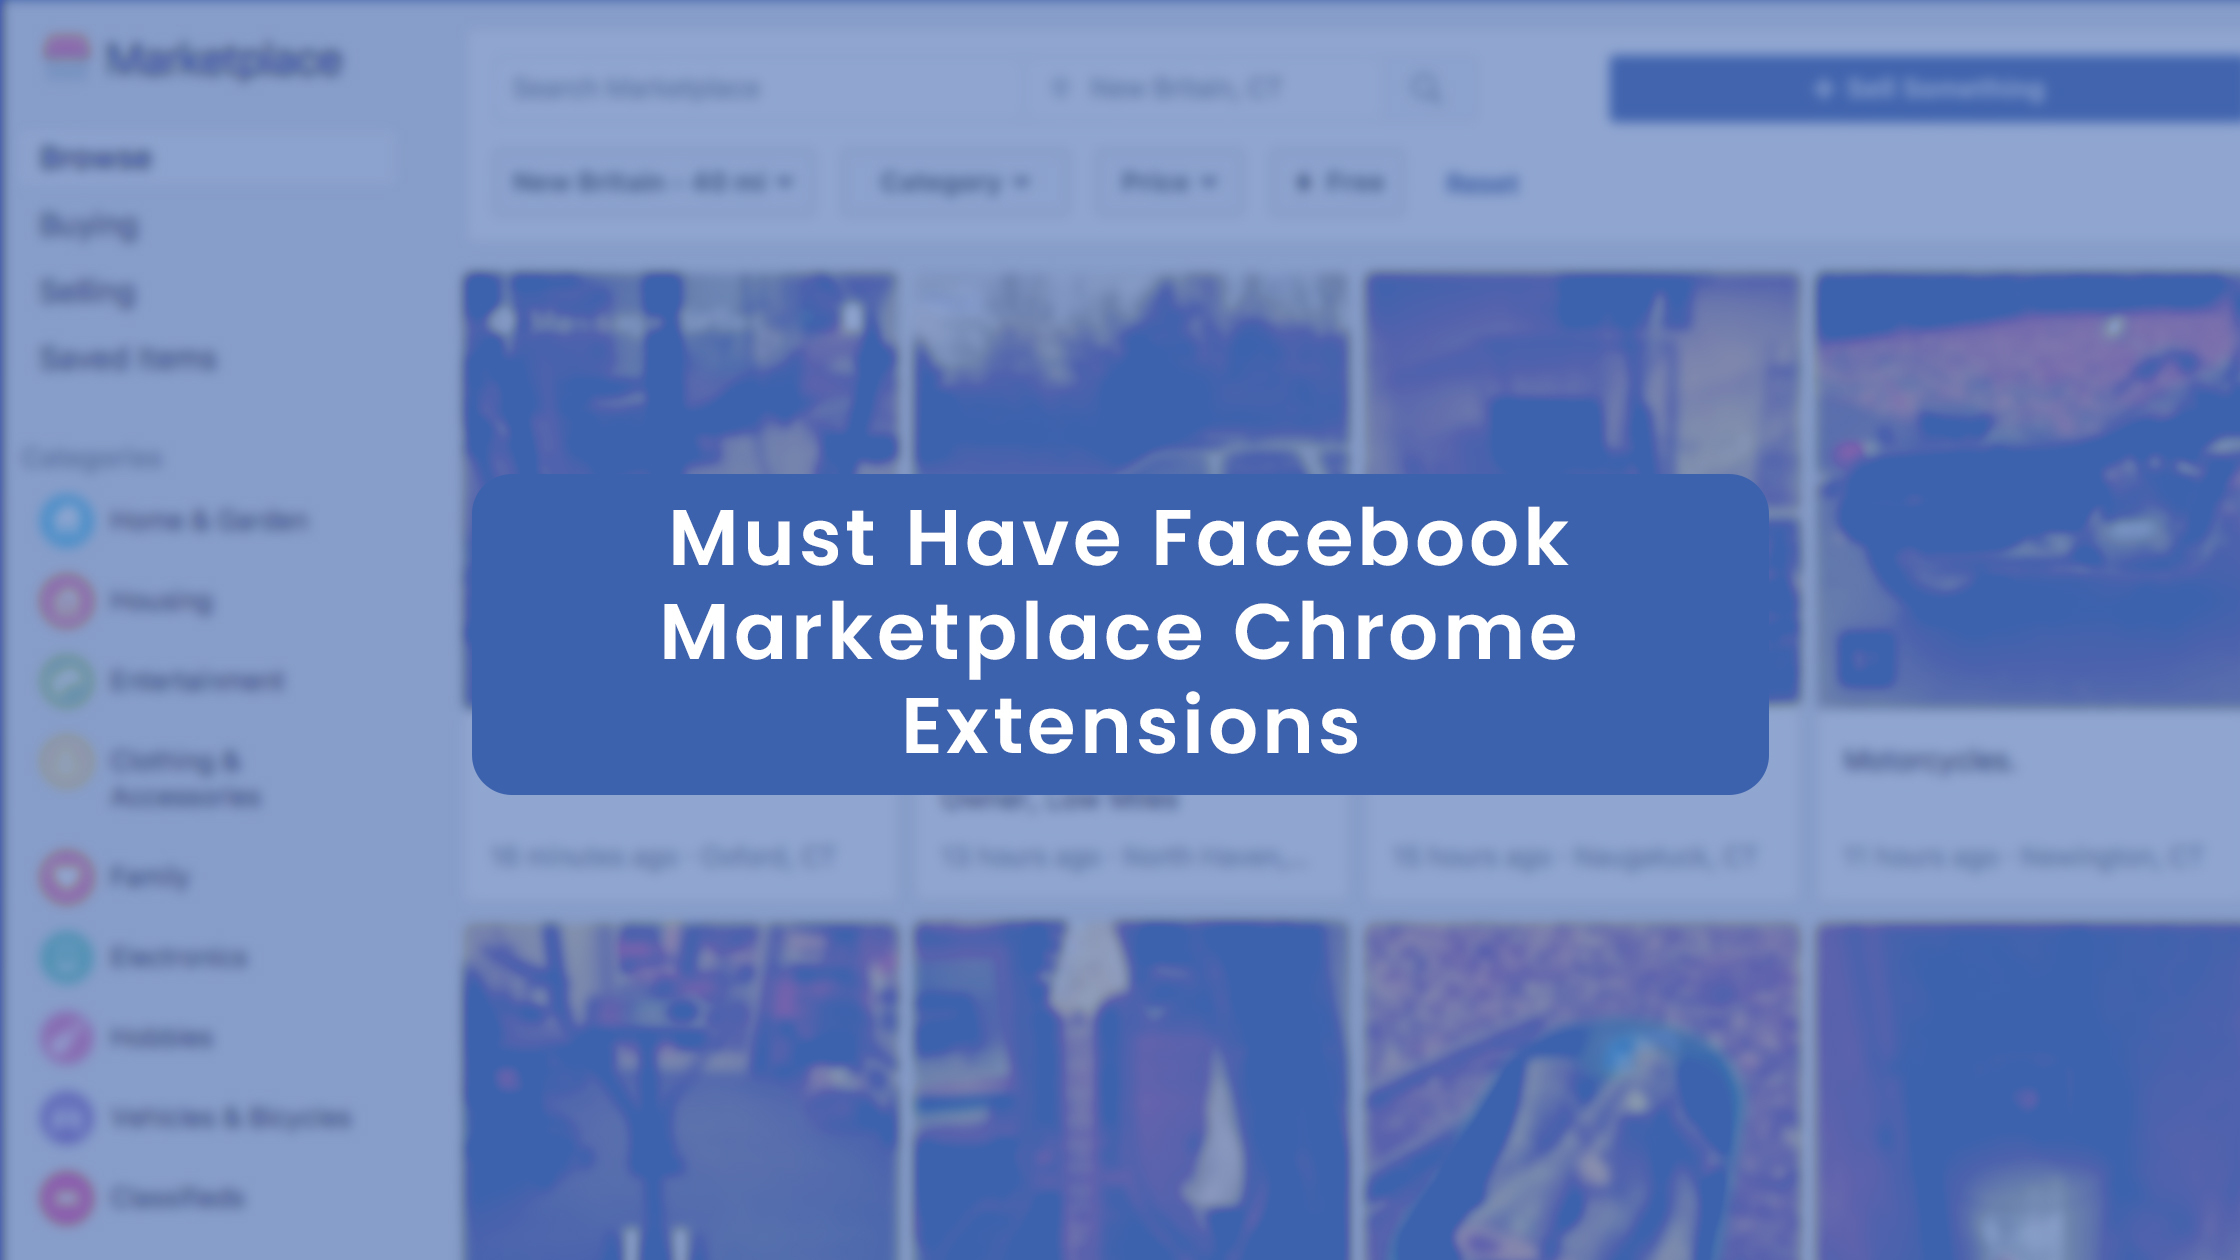 2-Must-Have Facebook Marketplace Chrome Extension